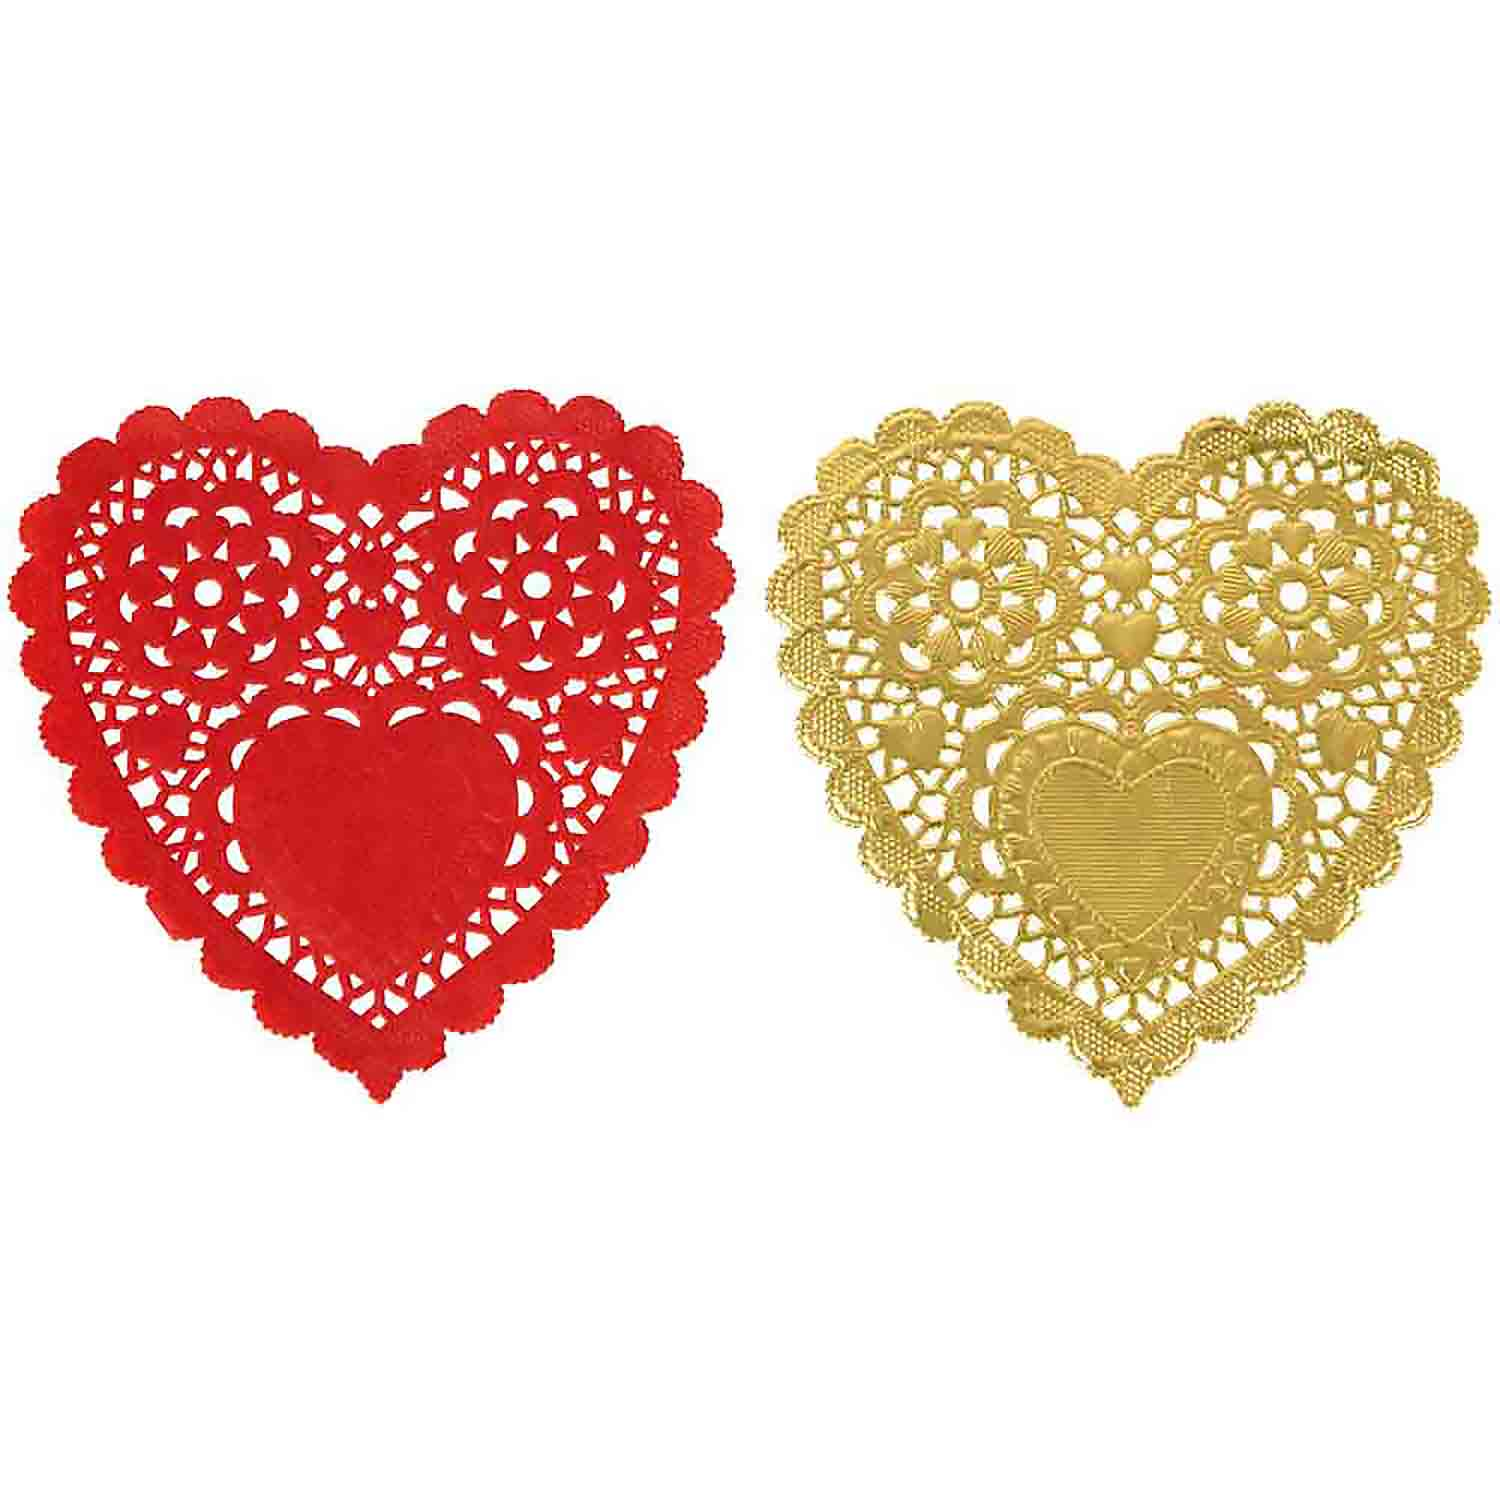 Red and Gold Heart Doilies